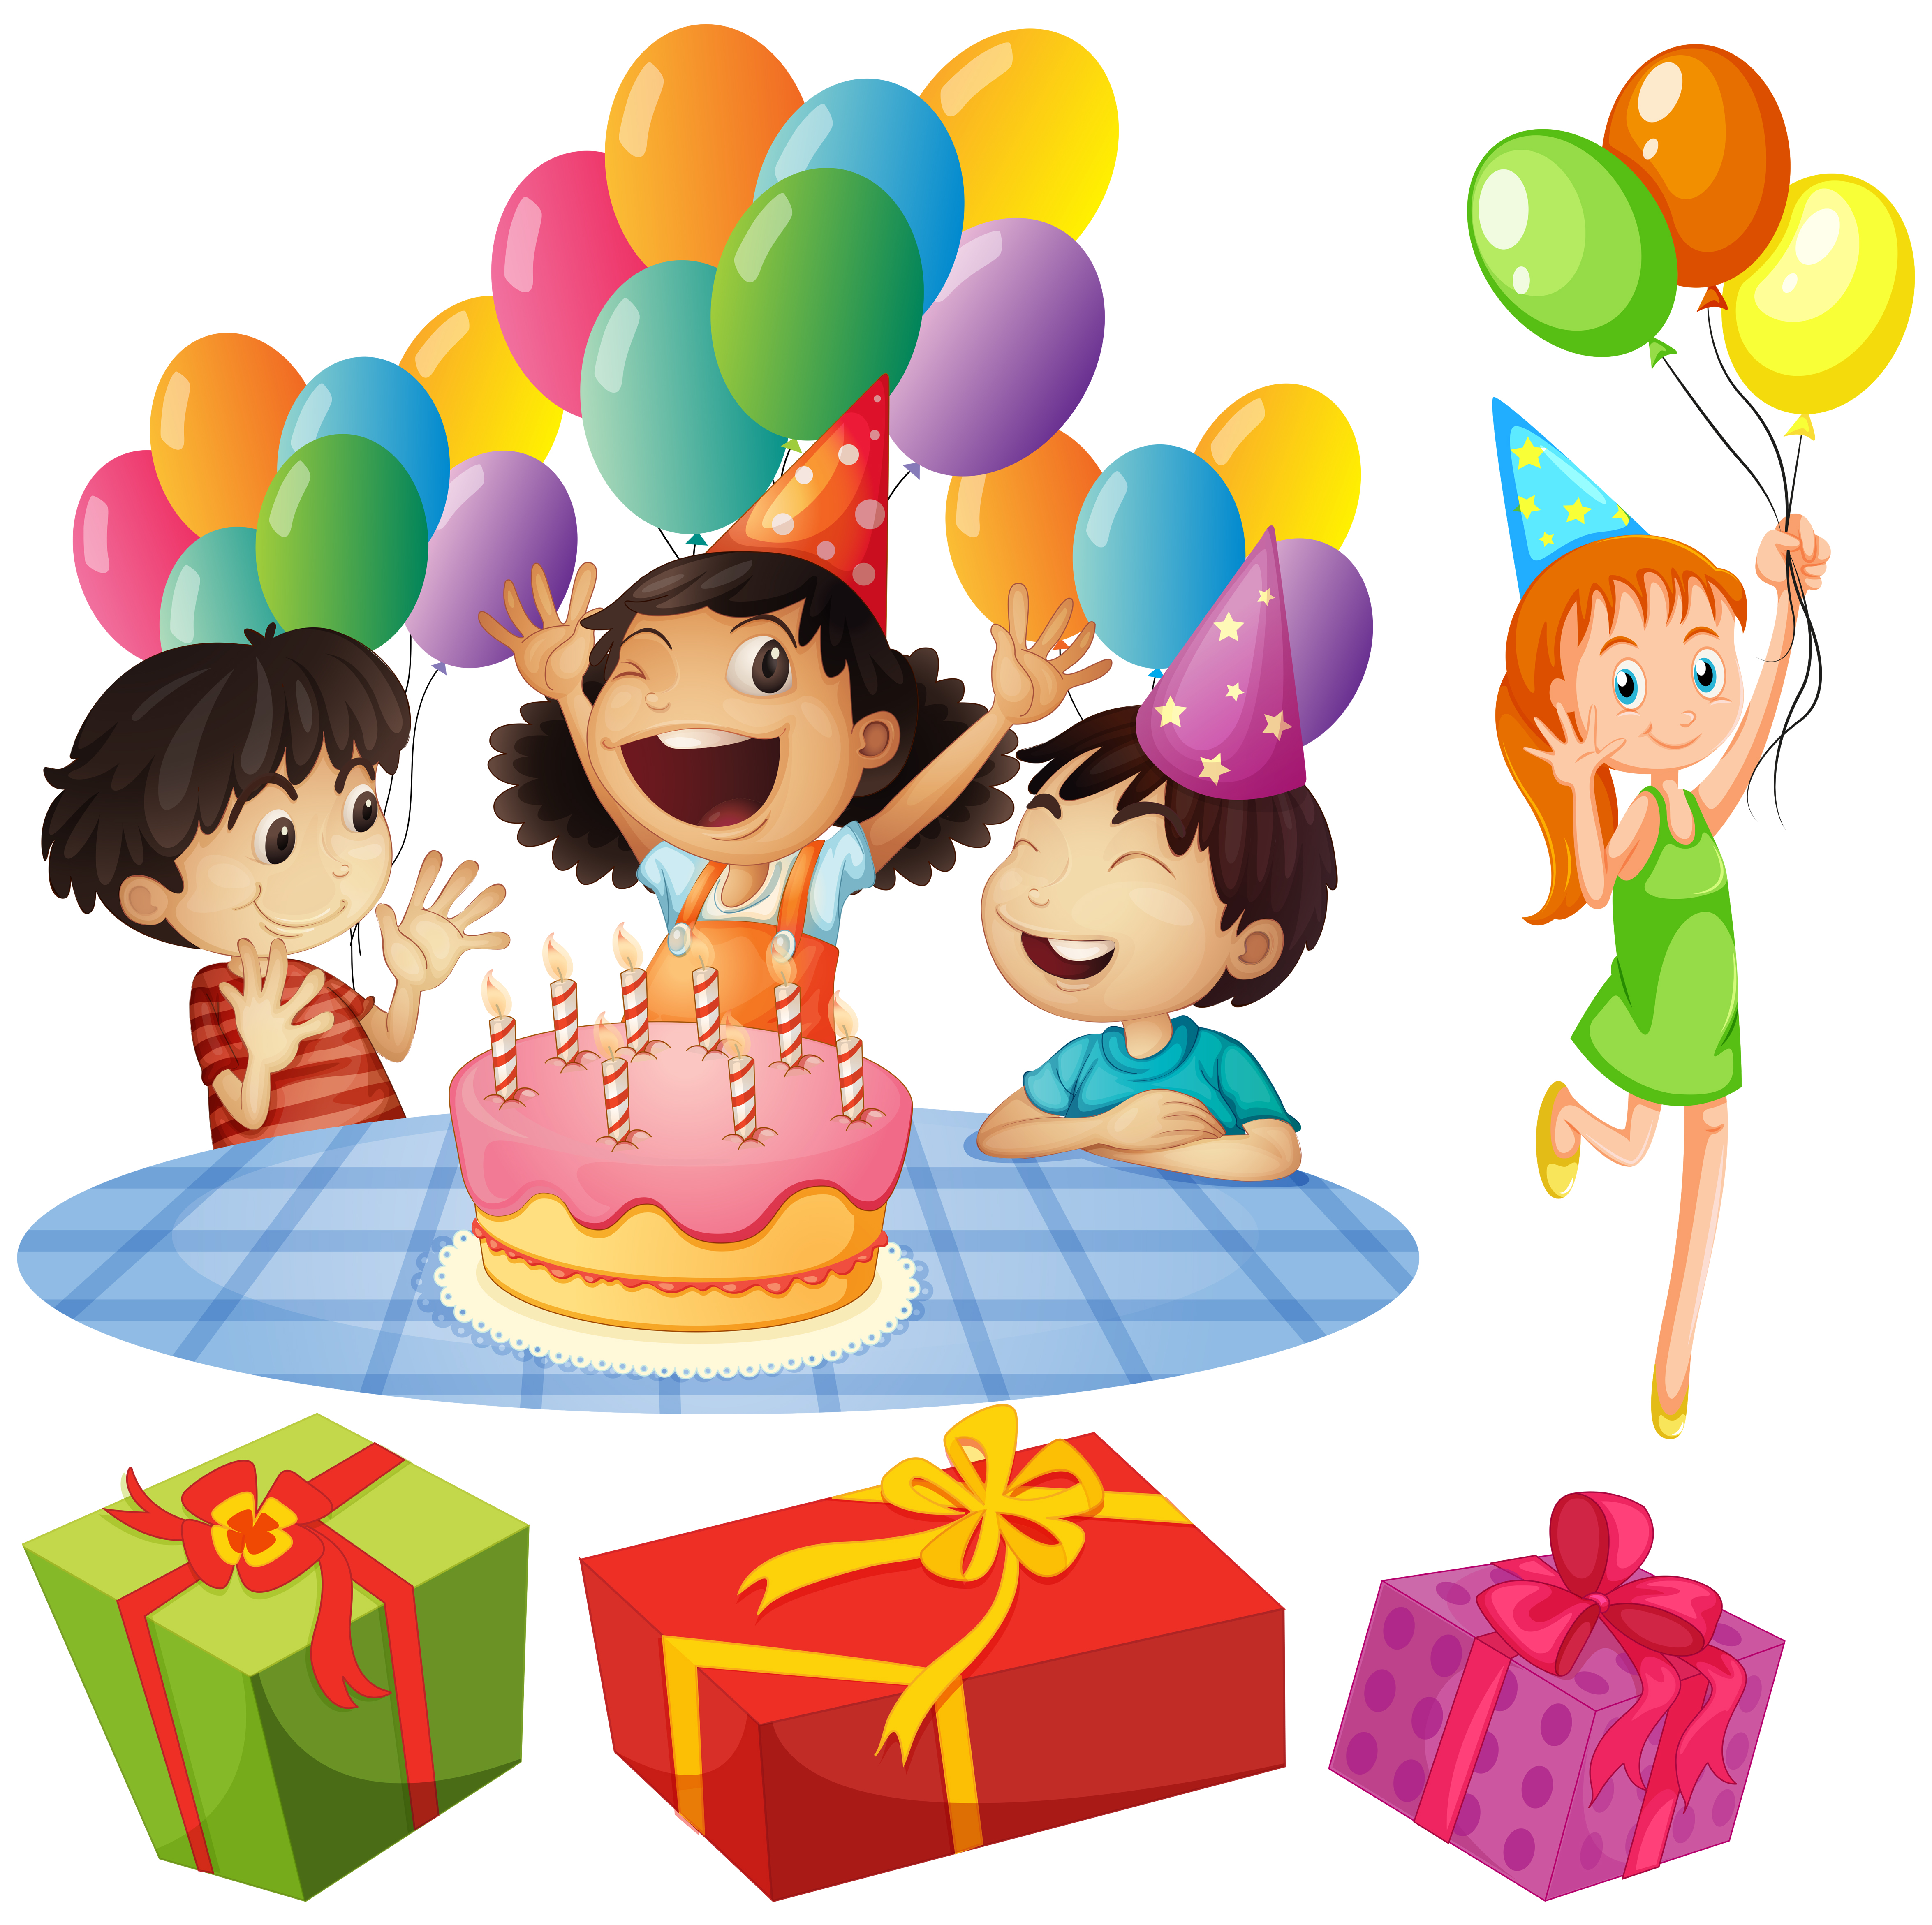 Kids At Birthday Party With Balloons And Presents